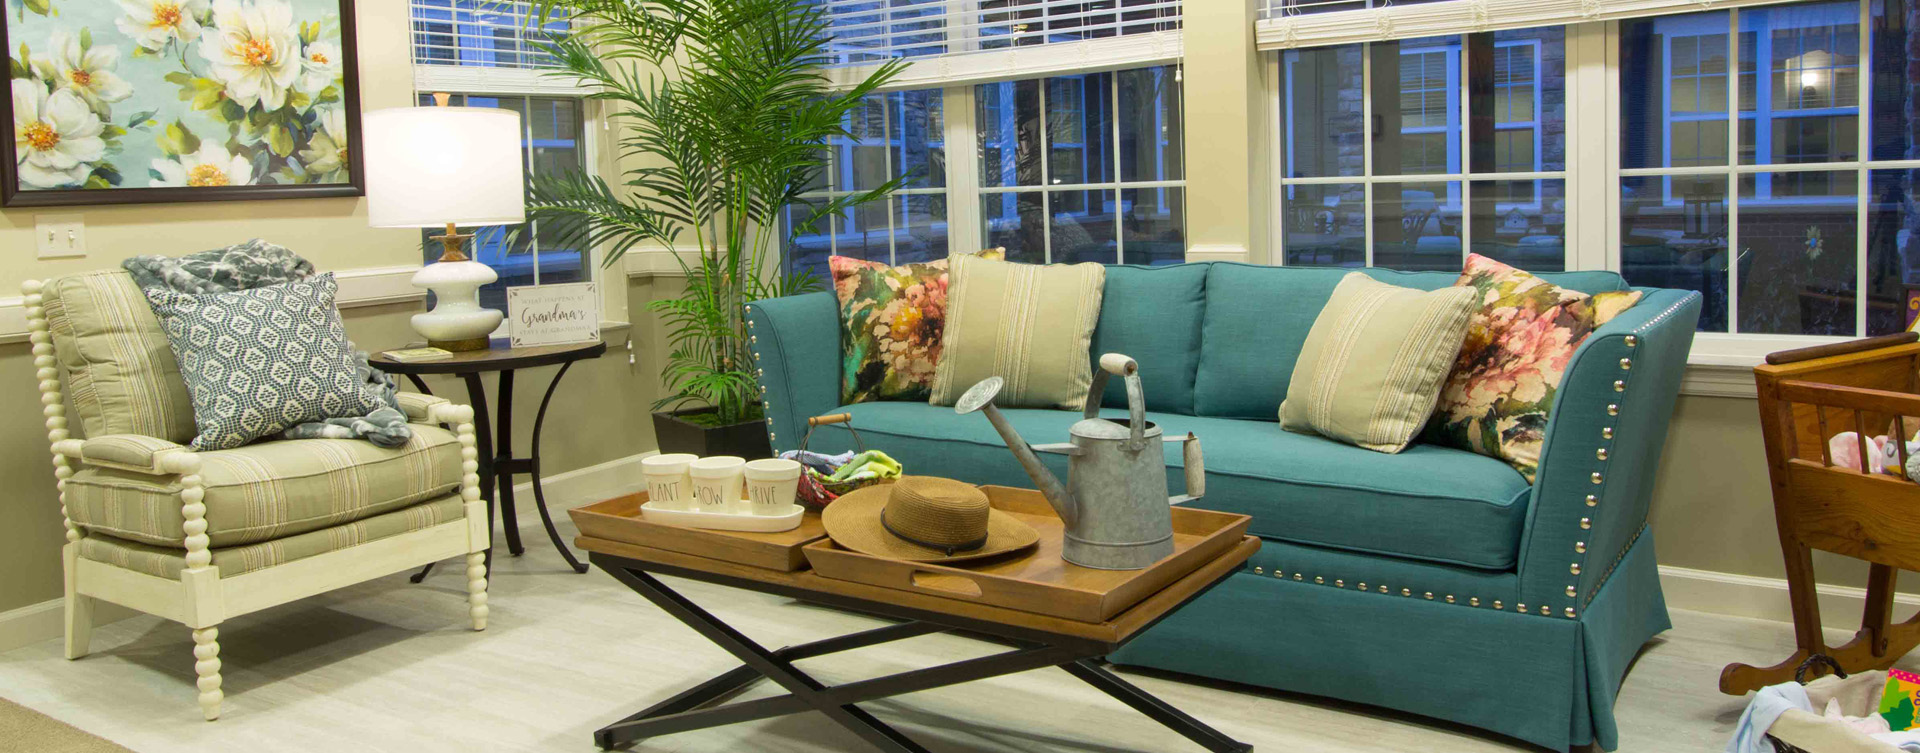 Relax in the warmth of the sunroom at Bickford of Gurnee